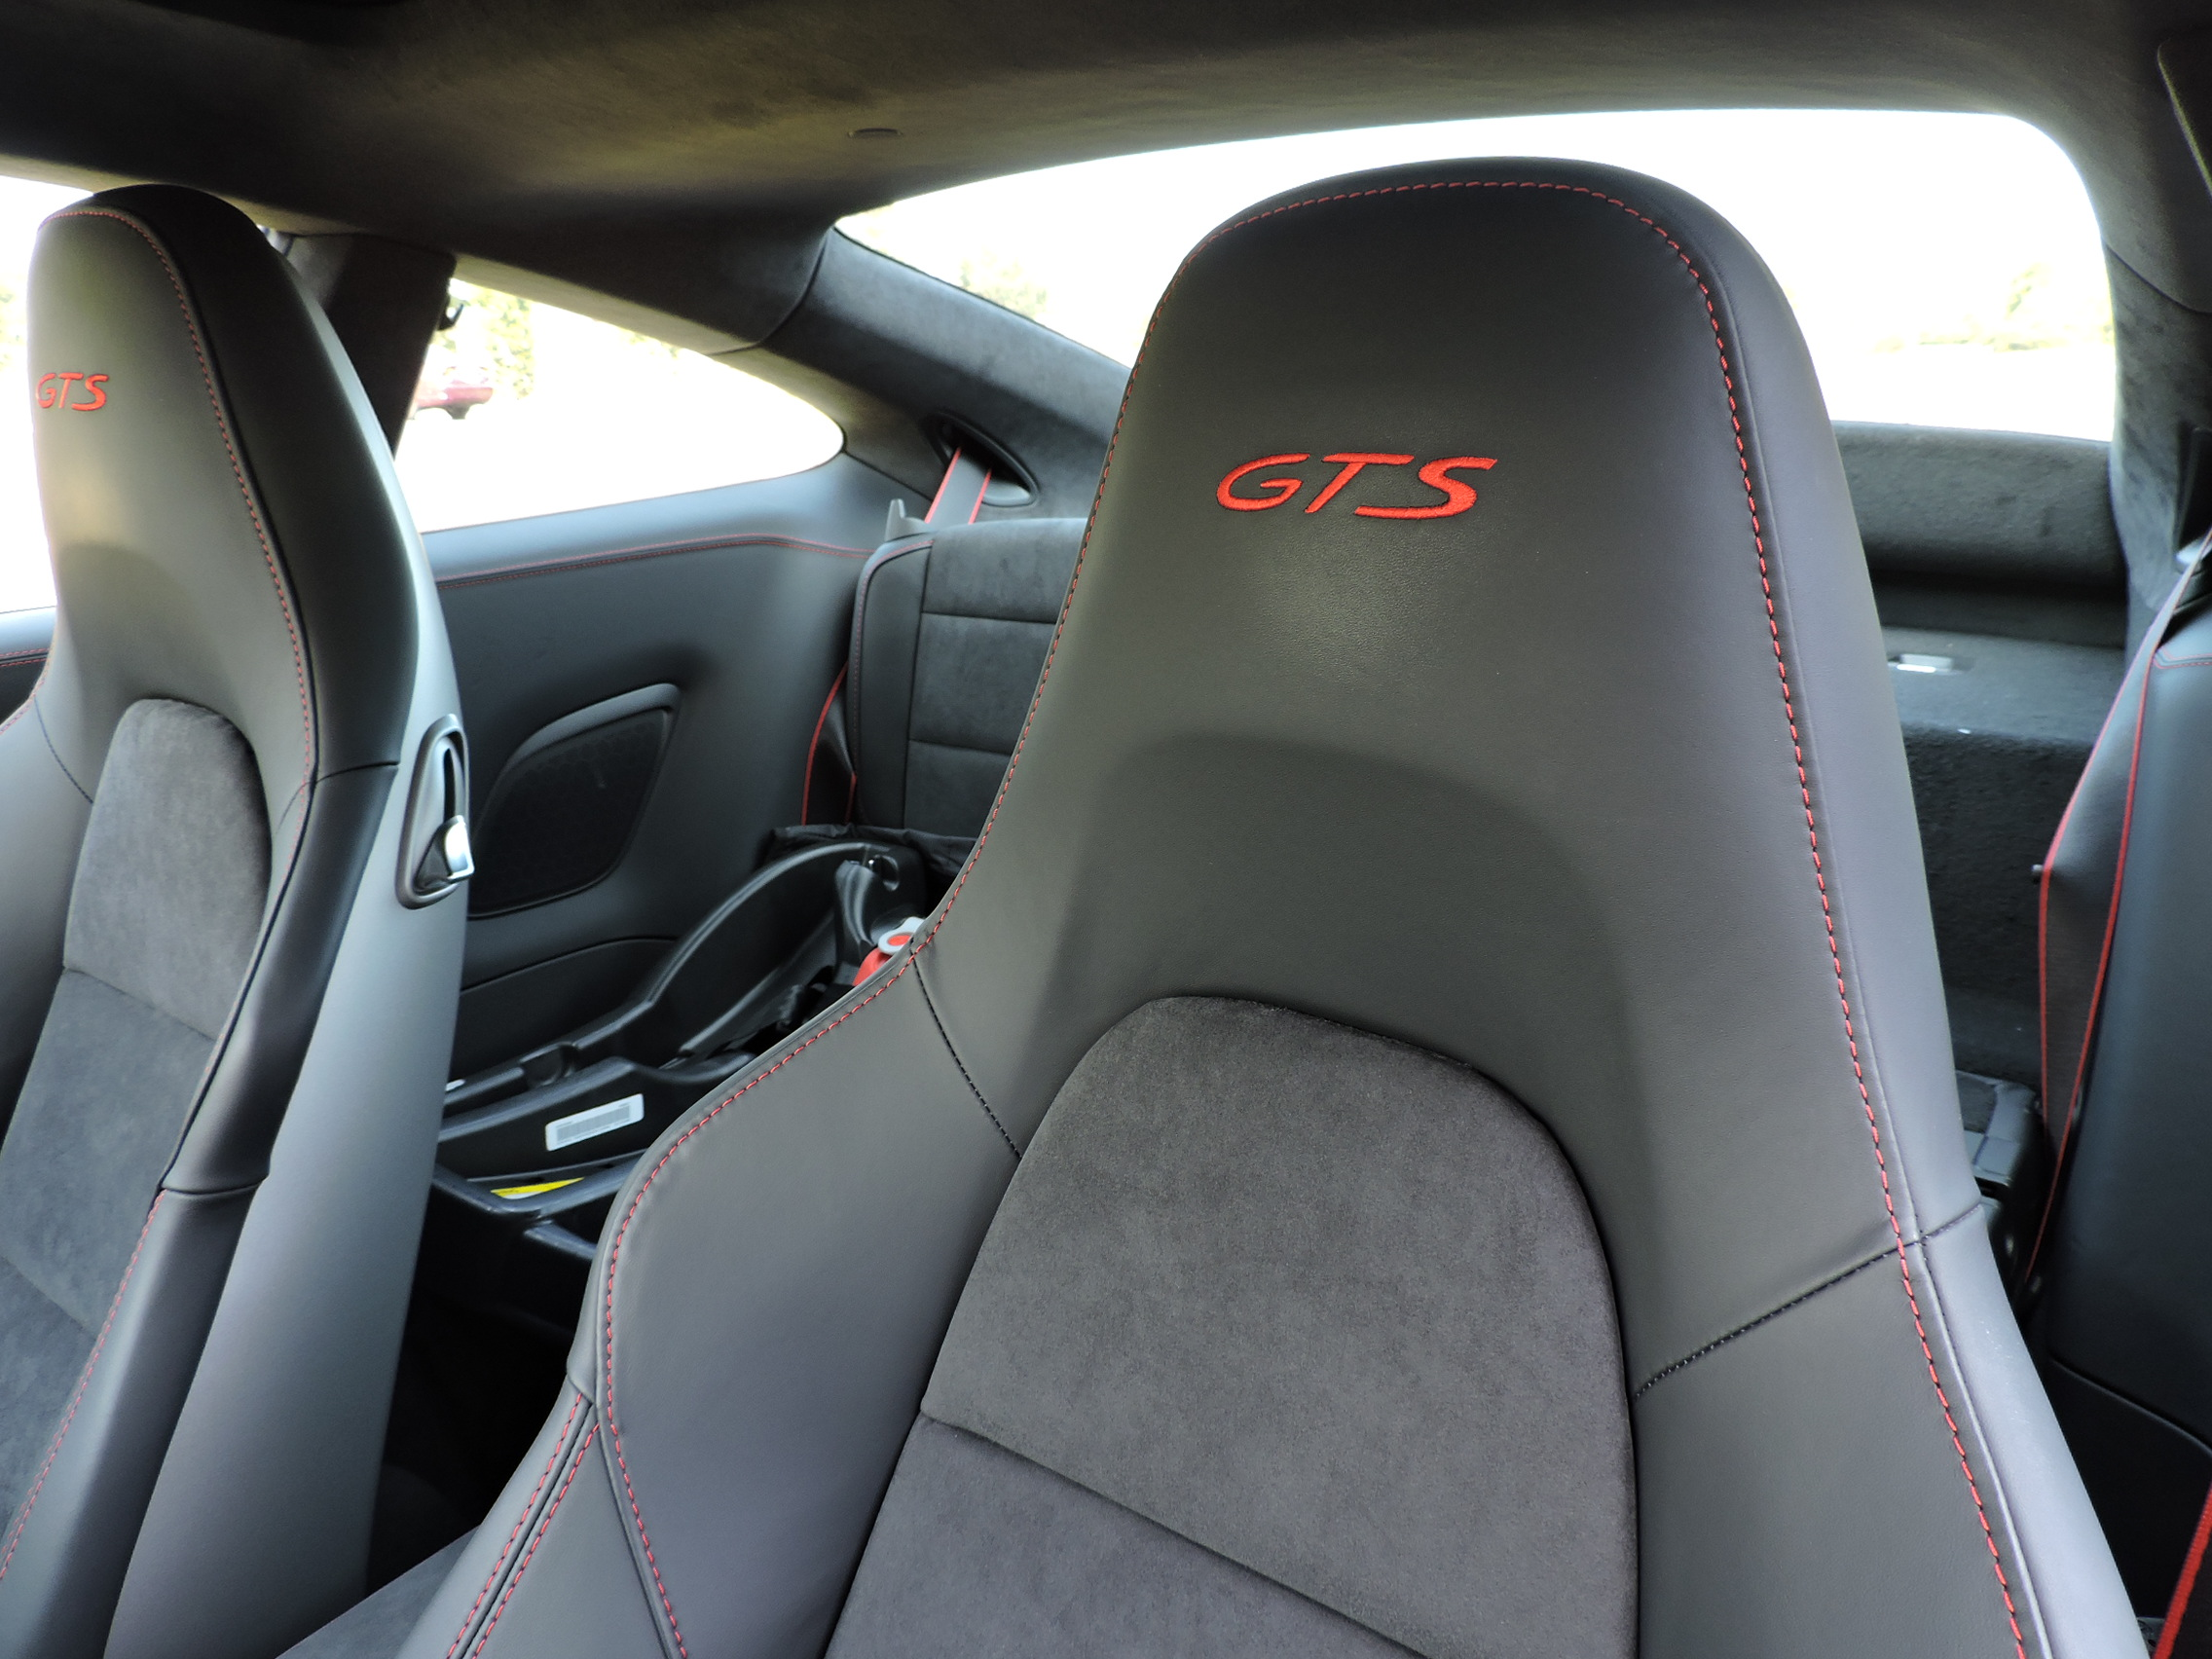 2015 Porsche 911 Carrera 4 GTS Review - AutoGuide.com on old corvette seats, old motorcycle seats, old jeep seats, old volvo seats,